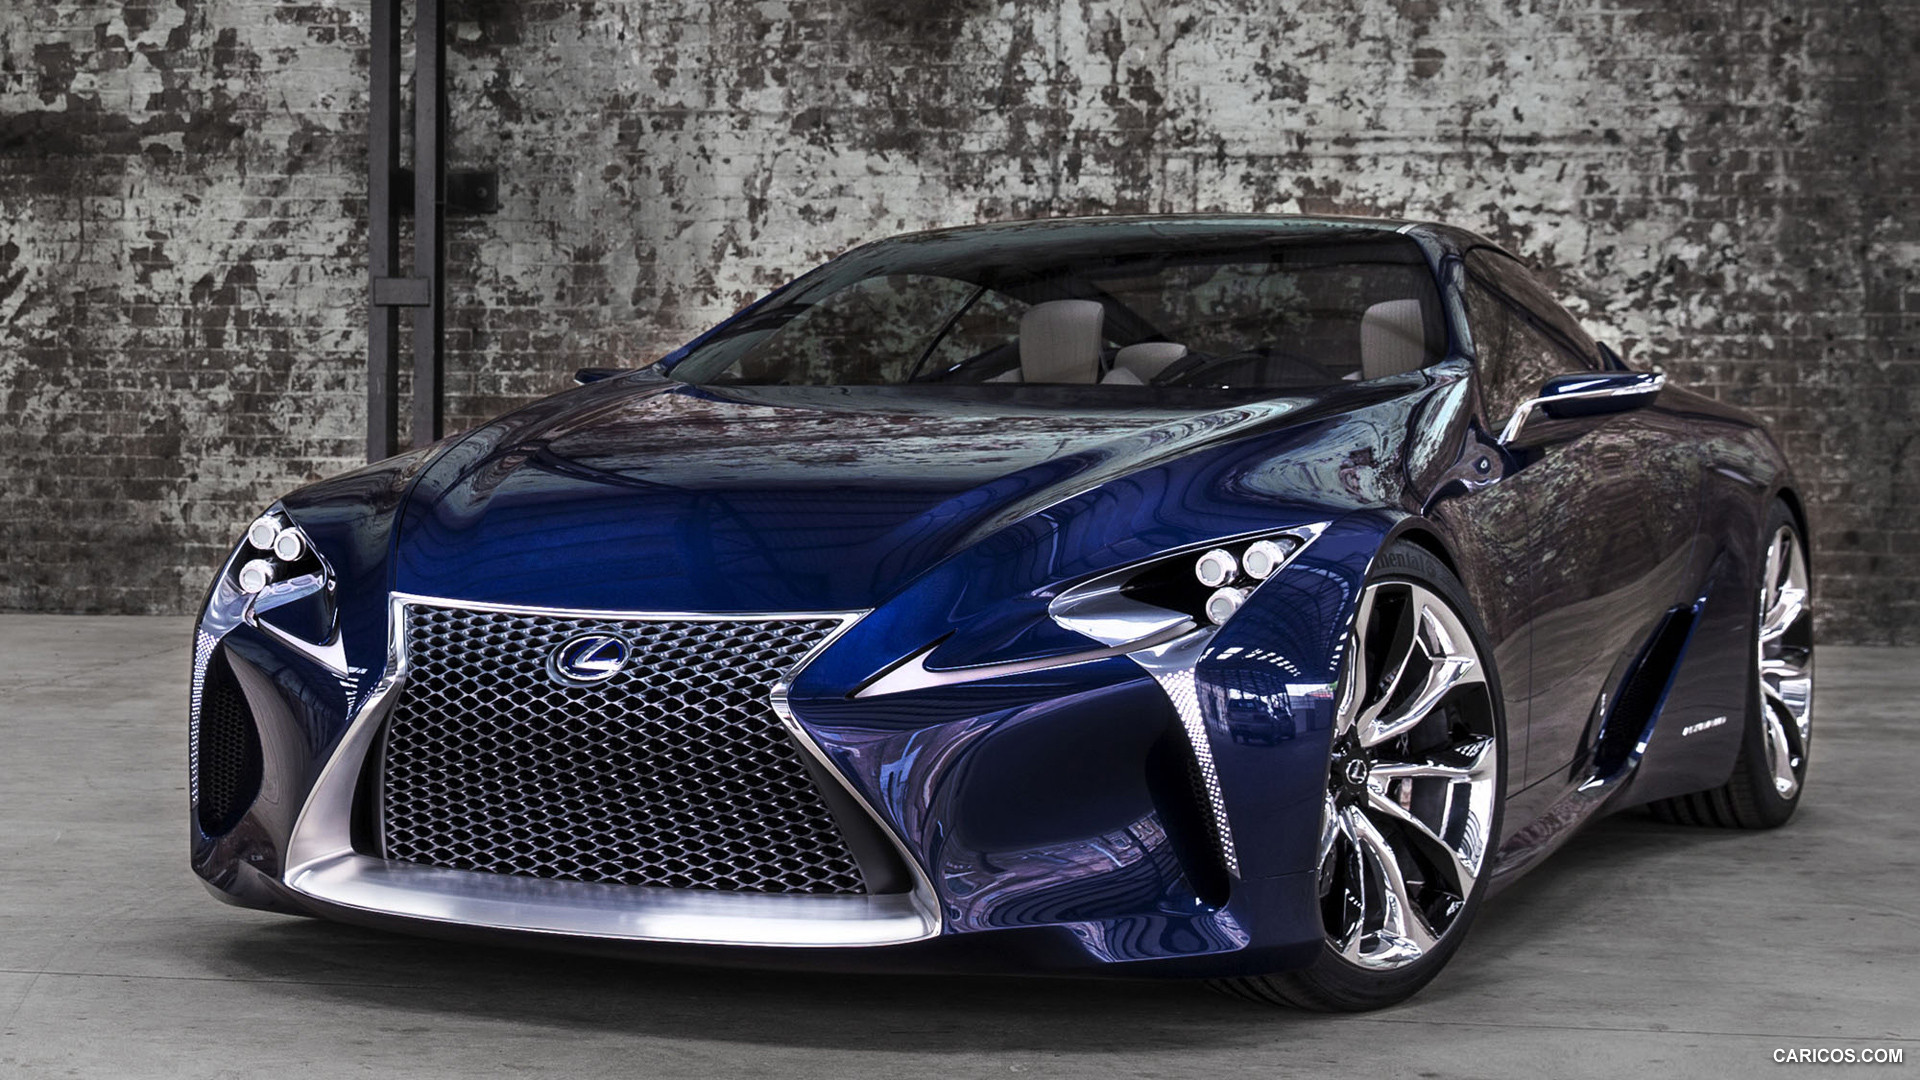 450 lexus hd wallpapers background images wallpaper abyss. Black Bedroom Furniture Sets. Home Design Ideas